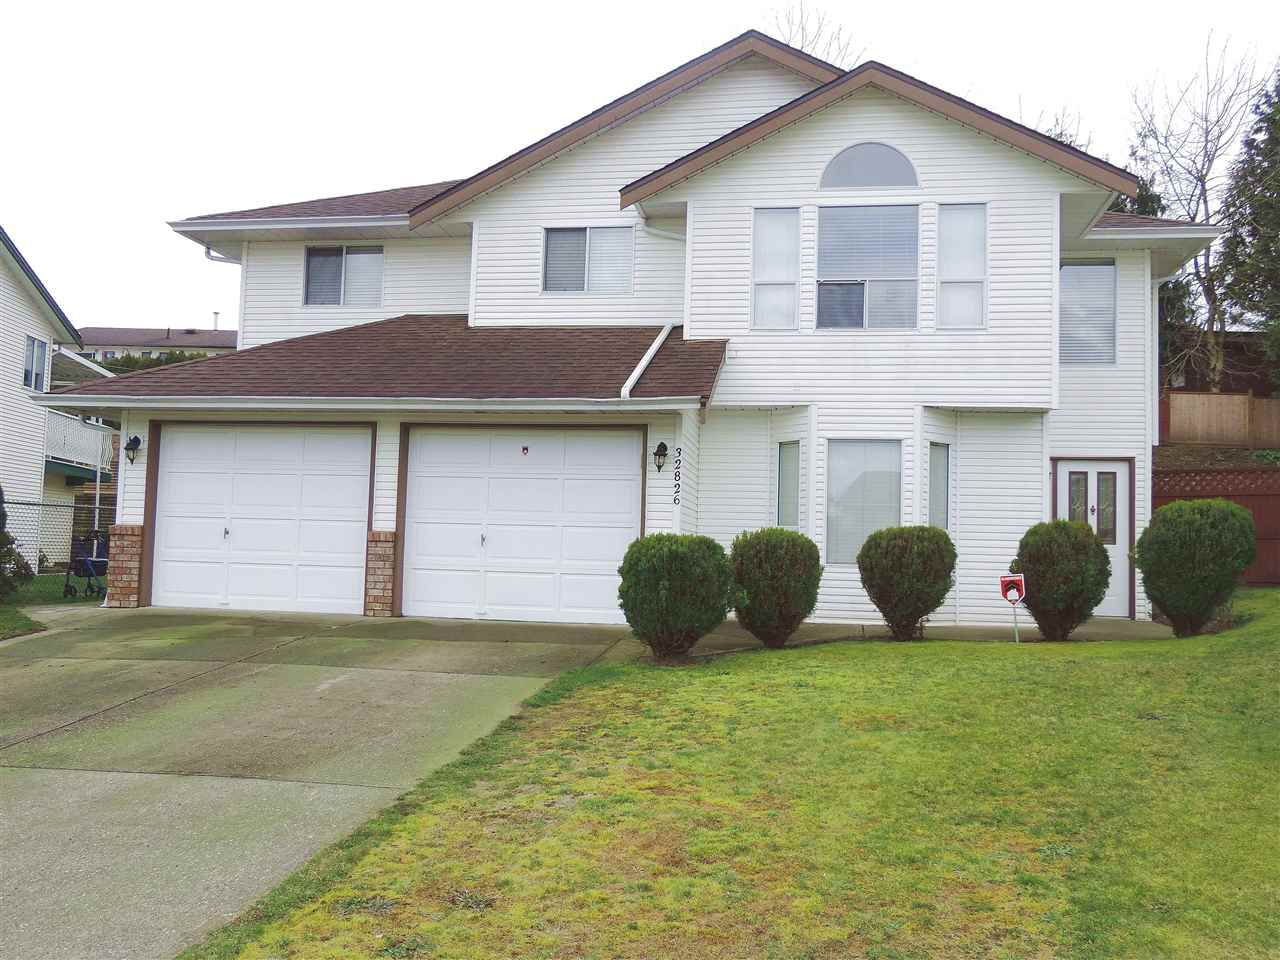 Main Photo: 32826 HARWOOD PLACE in Abbotsford: Central Abbotsford House for sale : MLS®# R2039577